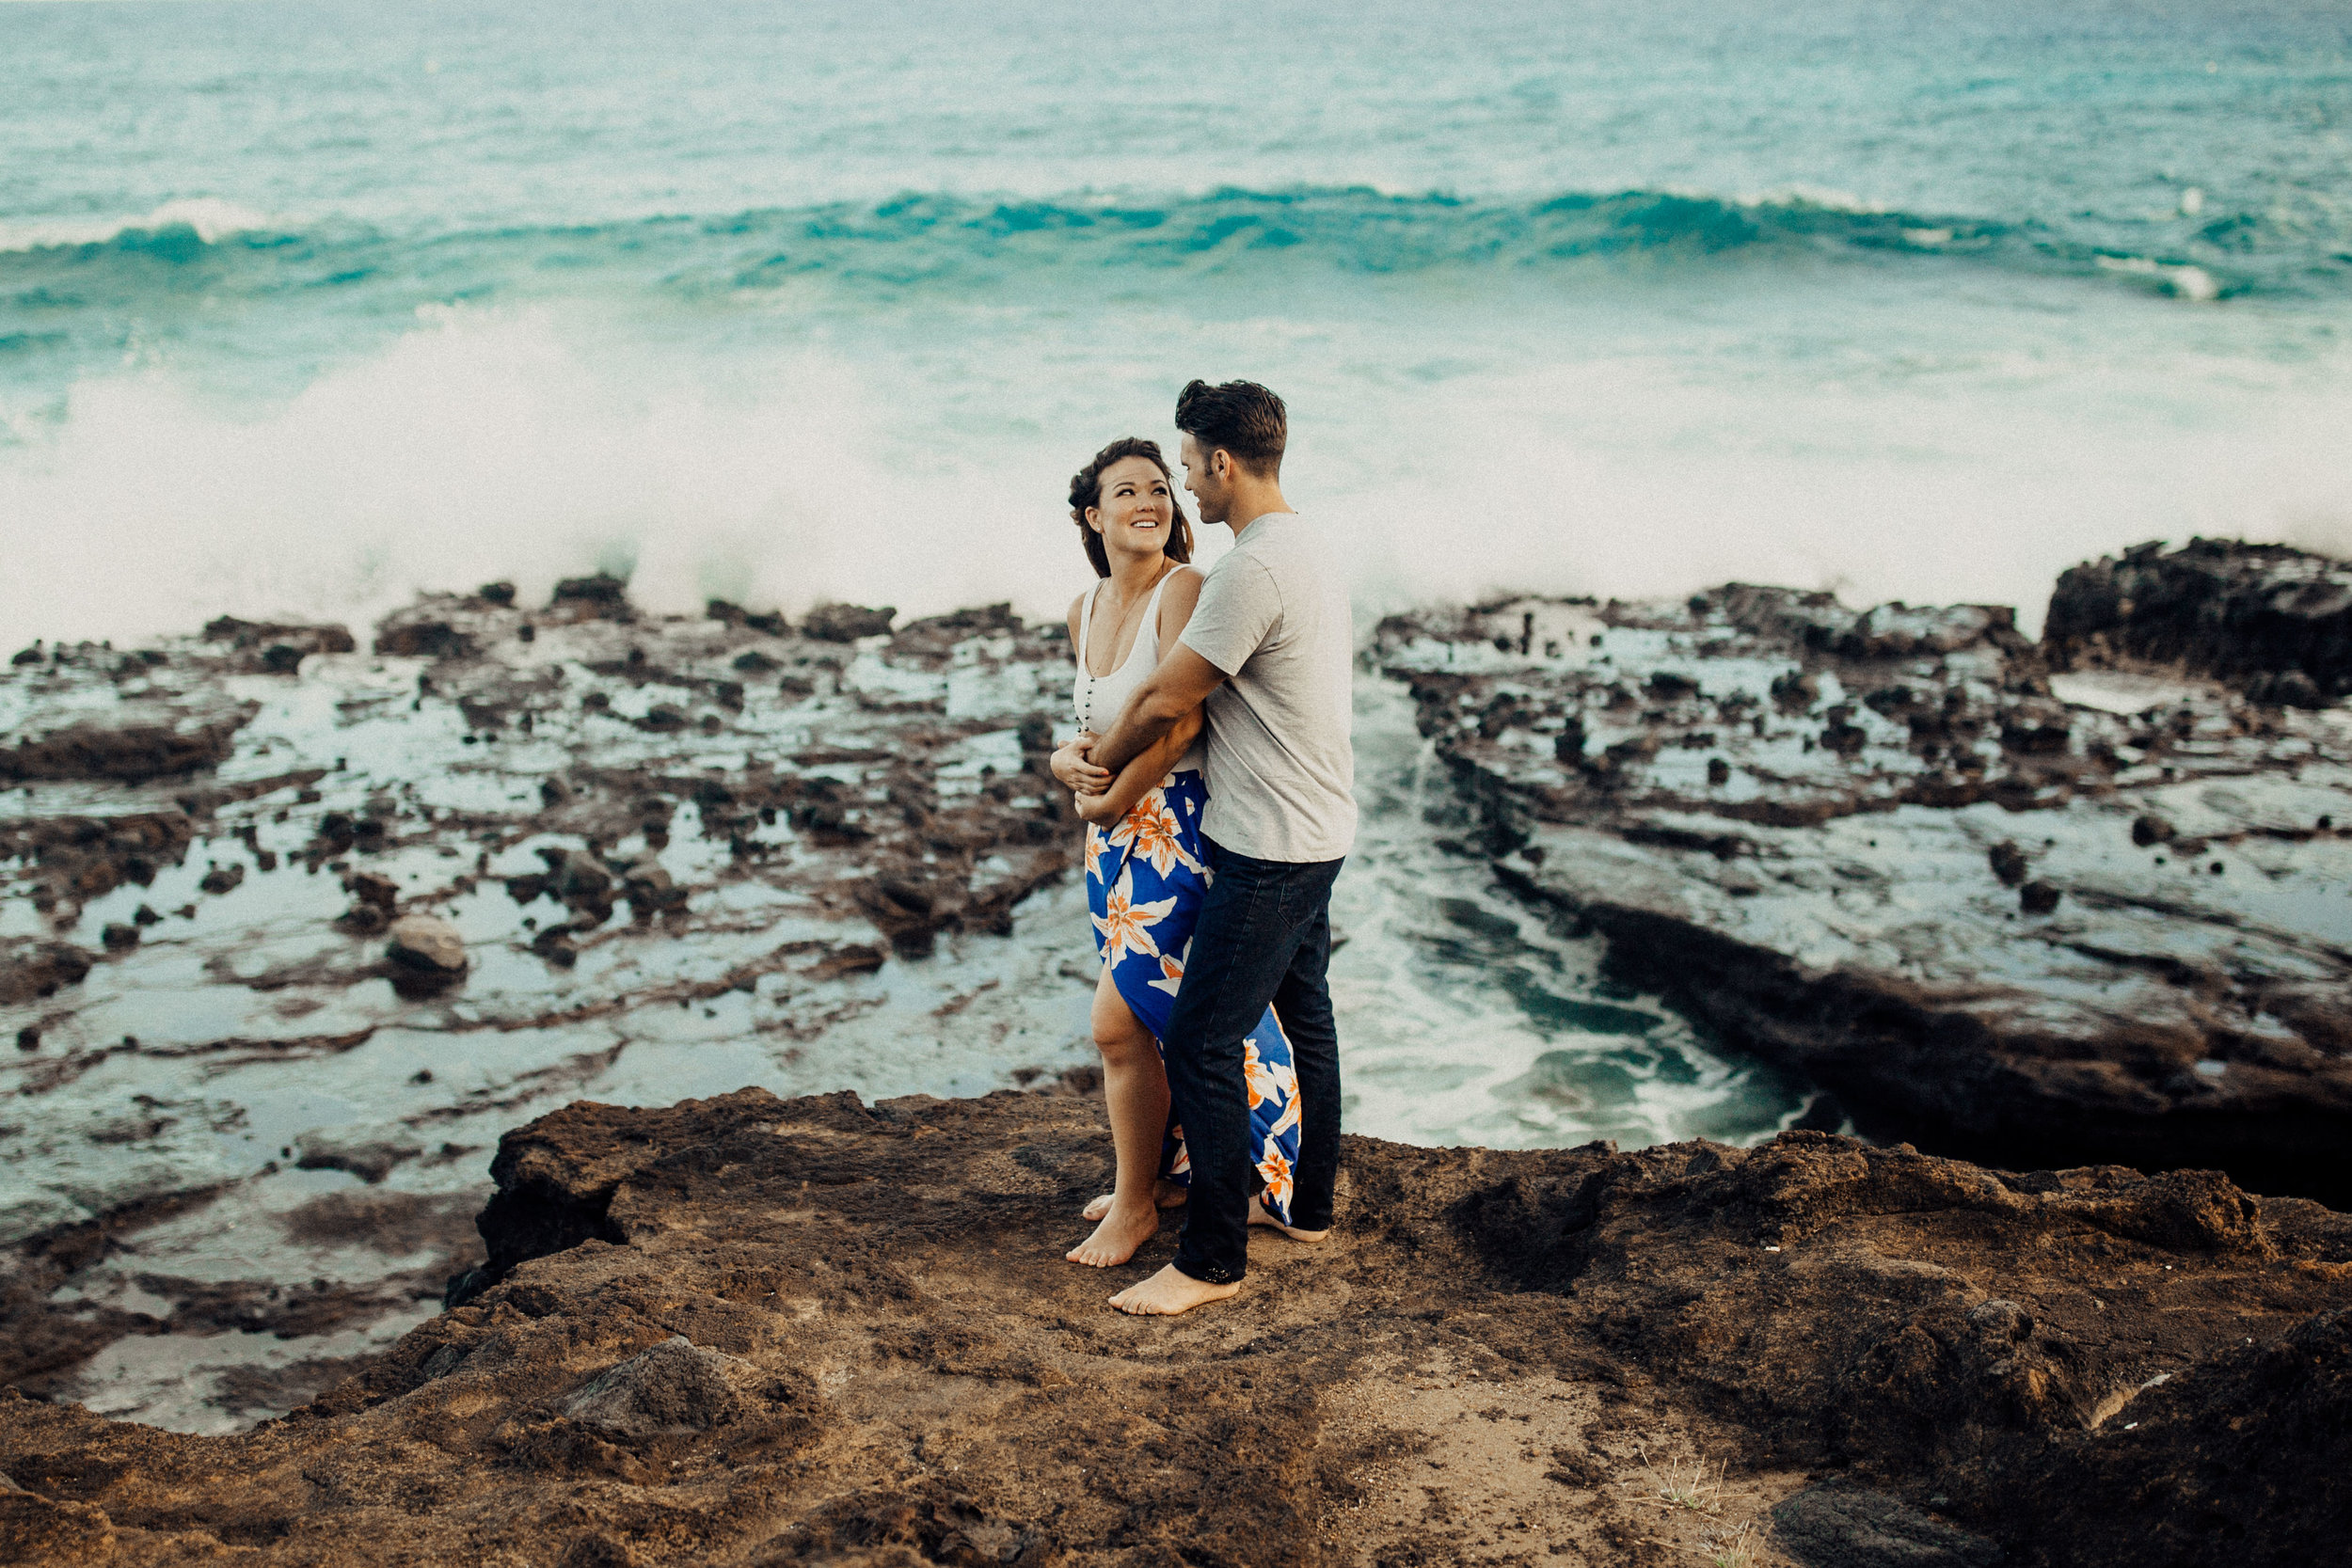 honolulu-wedding-photographer-216.jpg